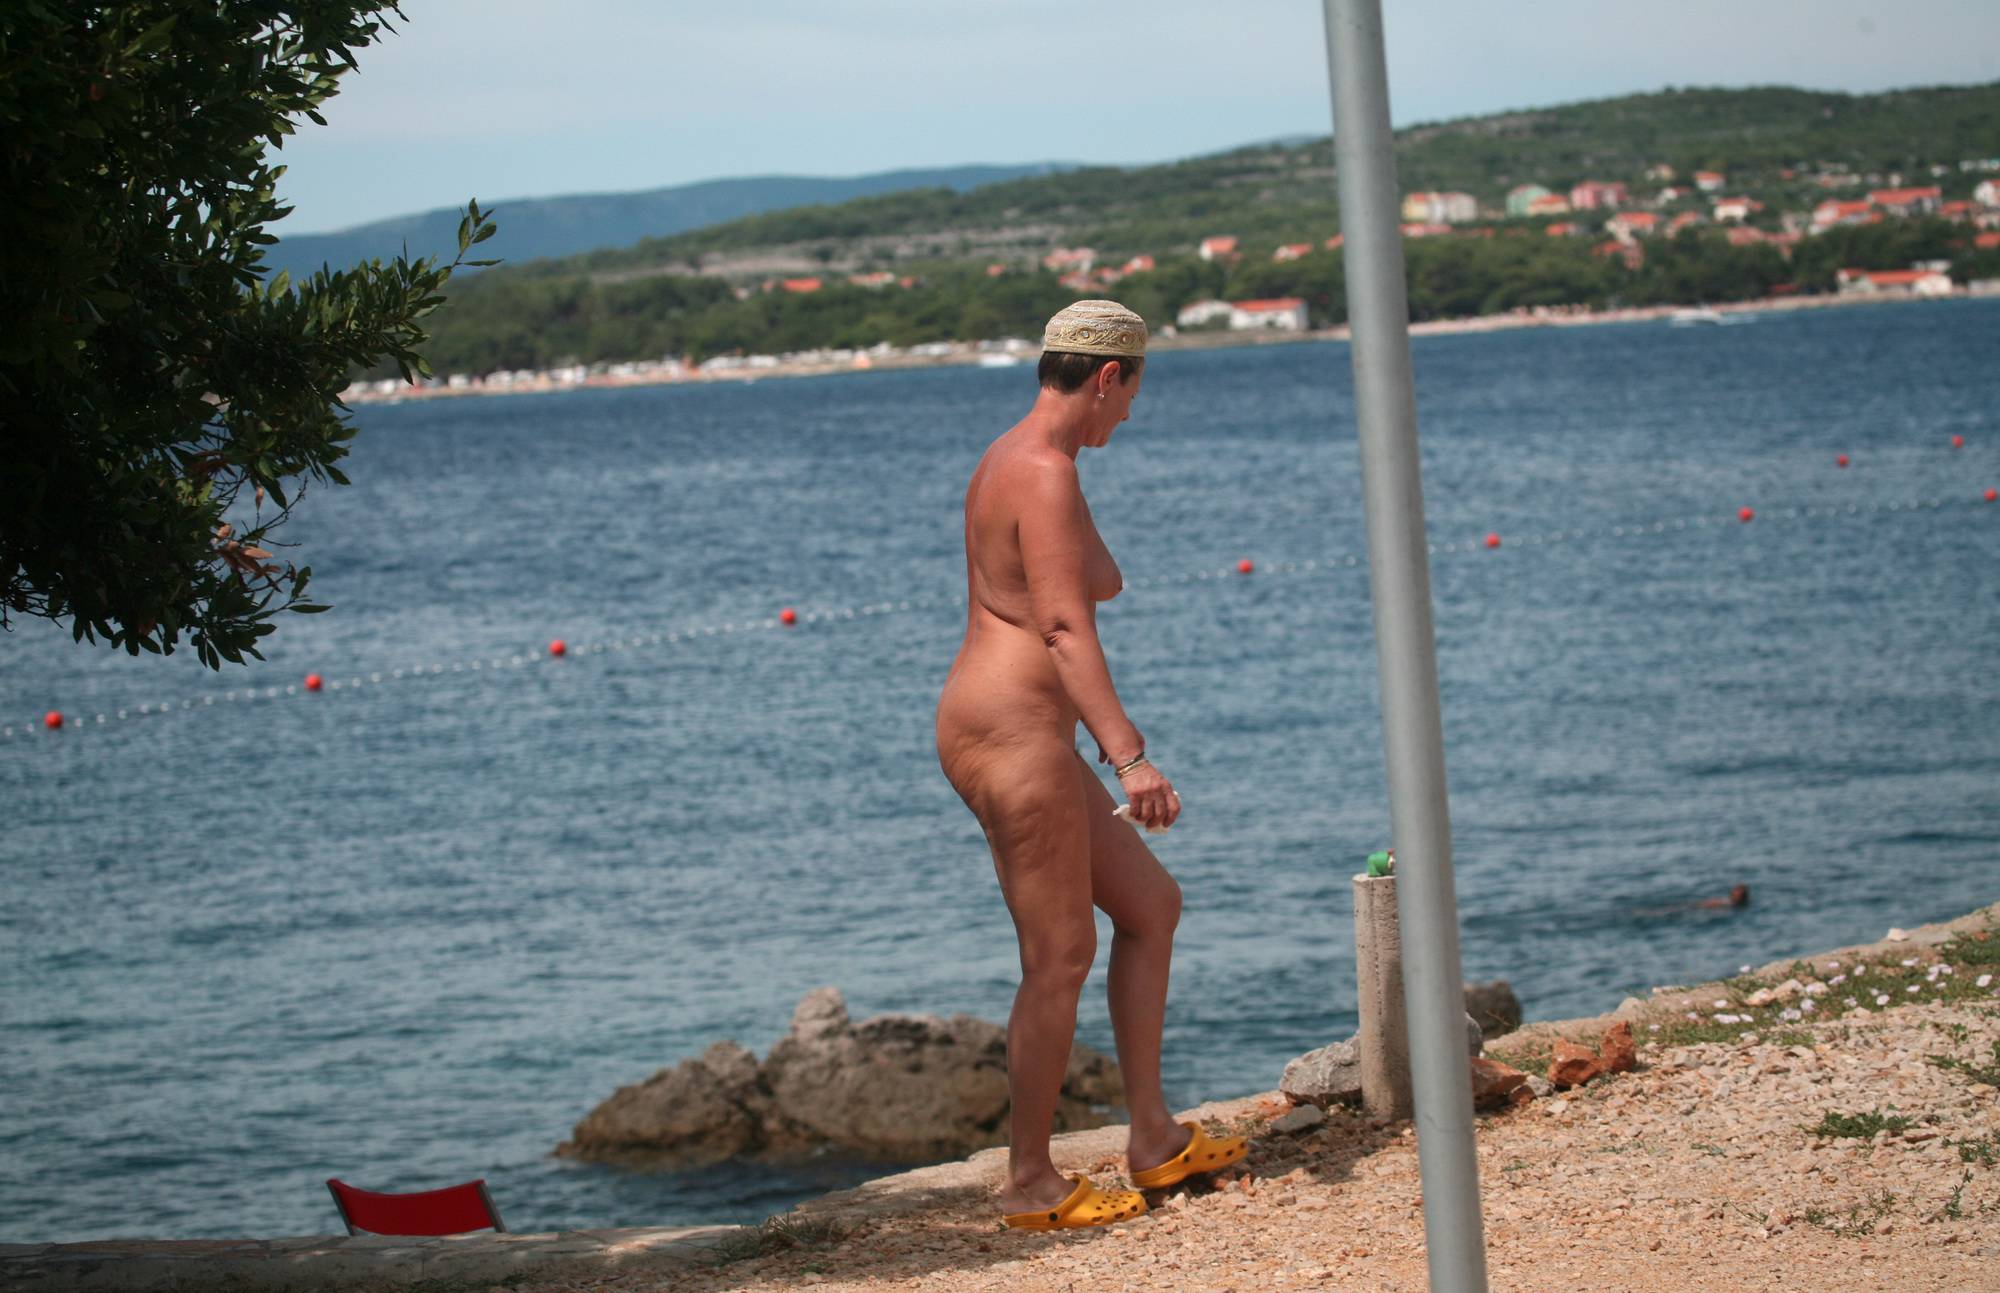 Nudist Photos Sandy Beach FKK Sidewalk - 2